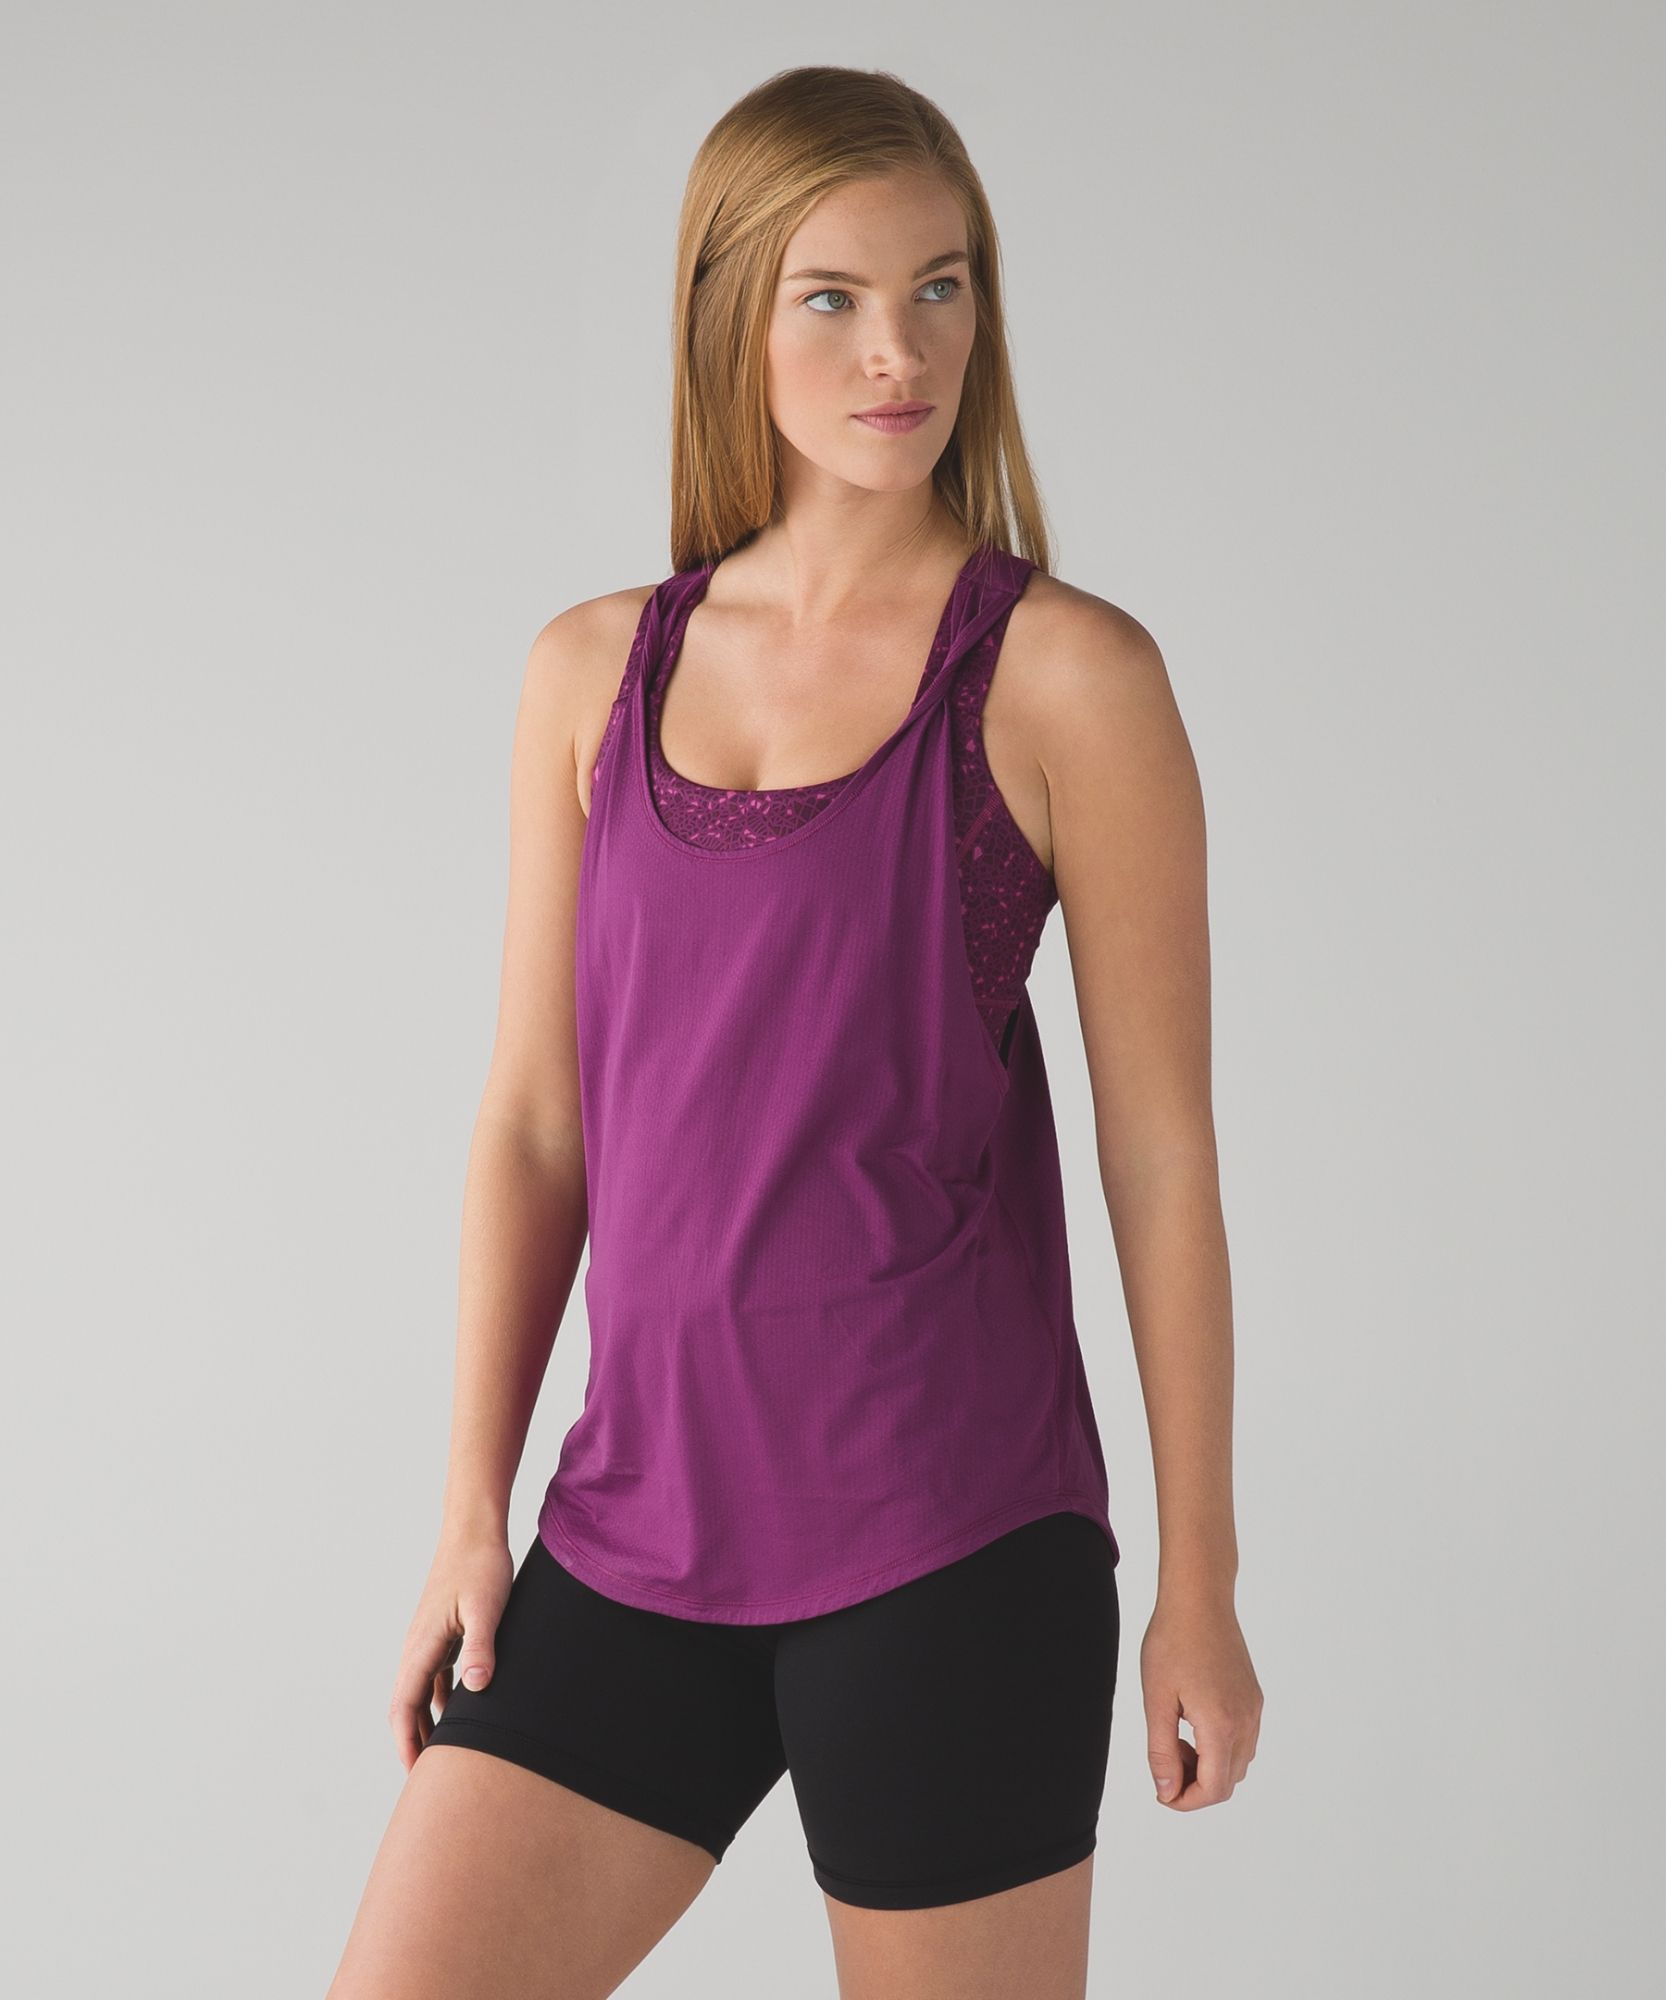 lululemon - medium support tank and bra duo - love it - love the colors - love the back #workout #fasion #sports